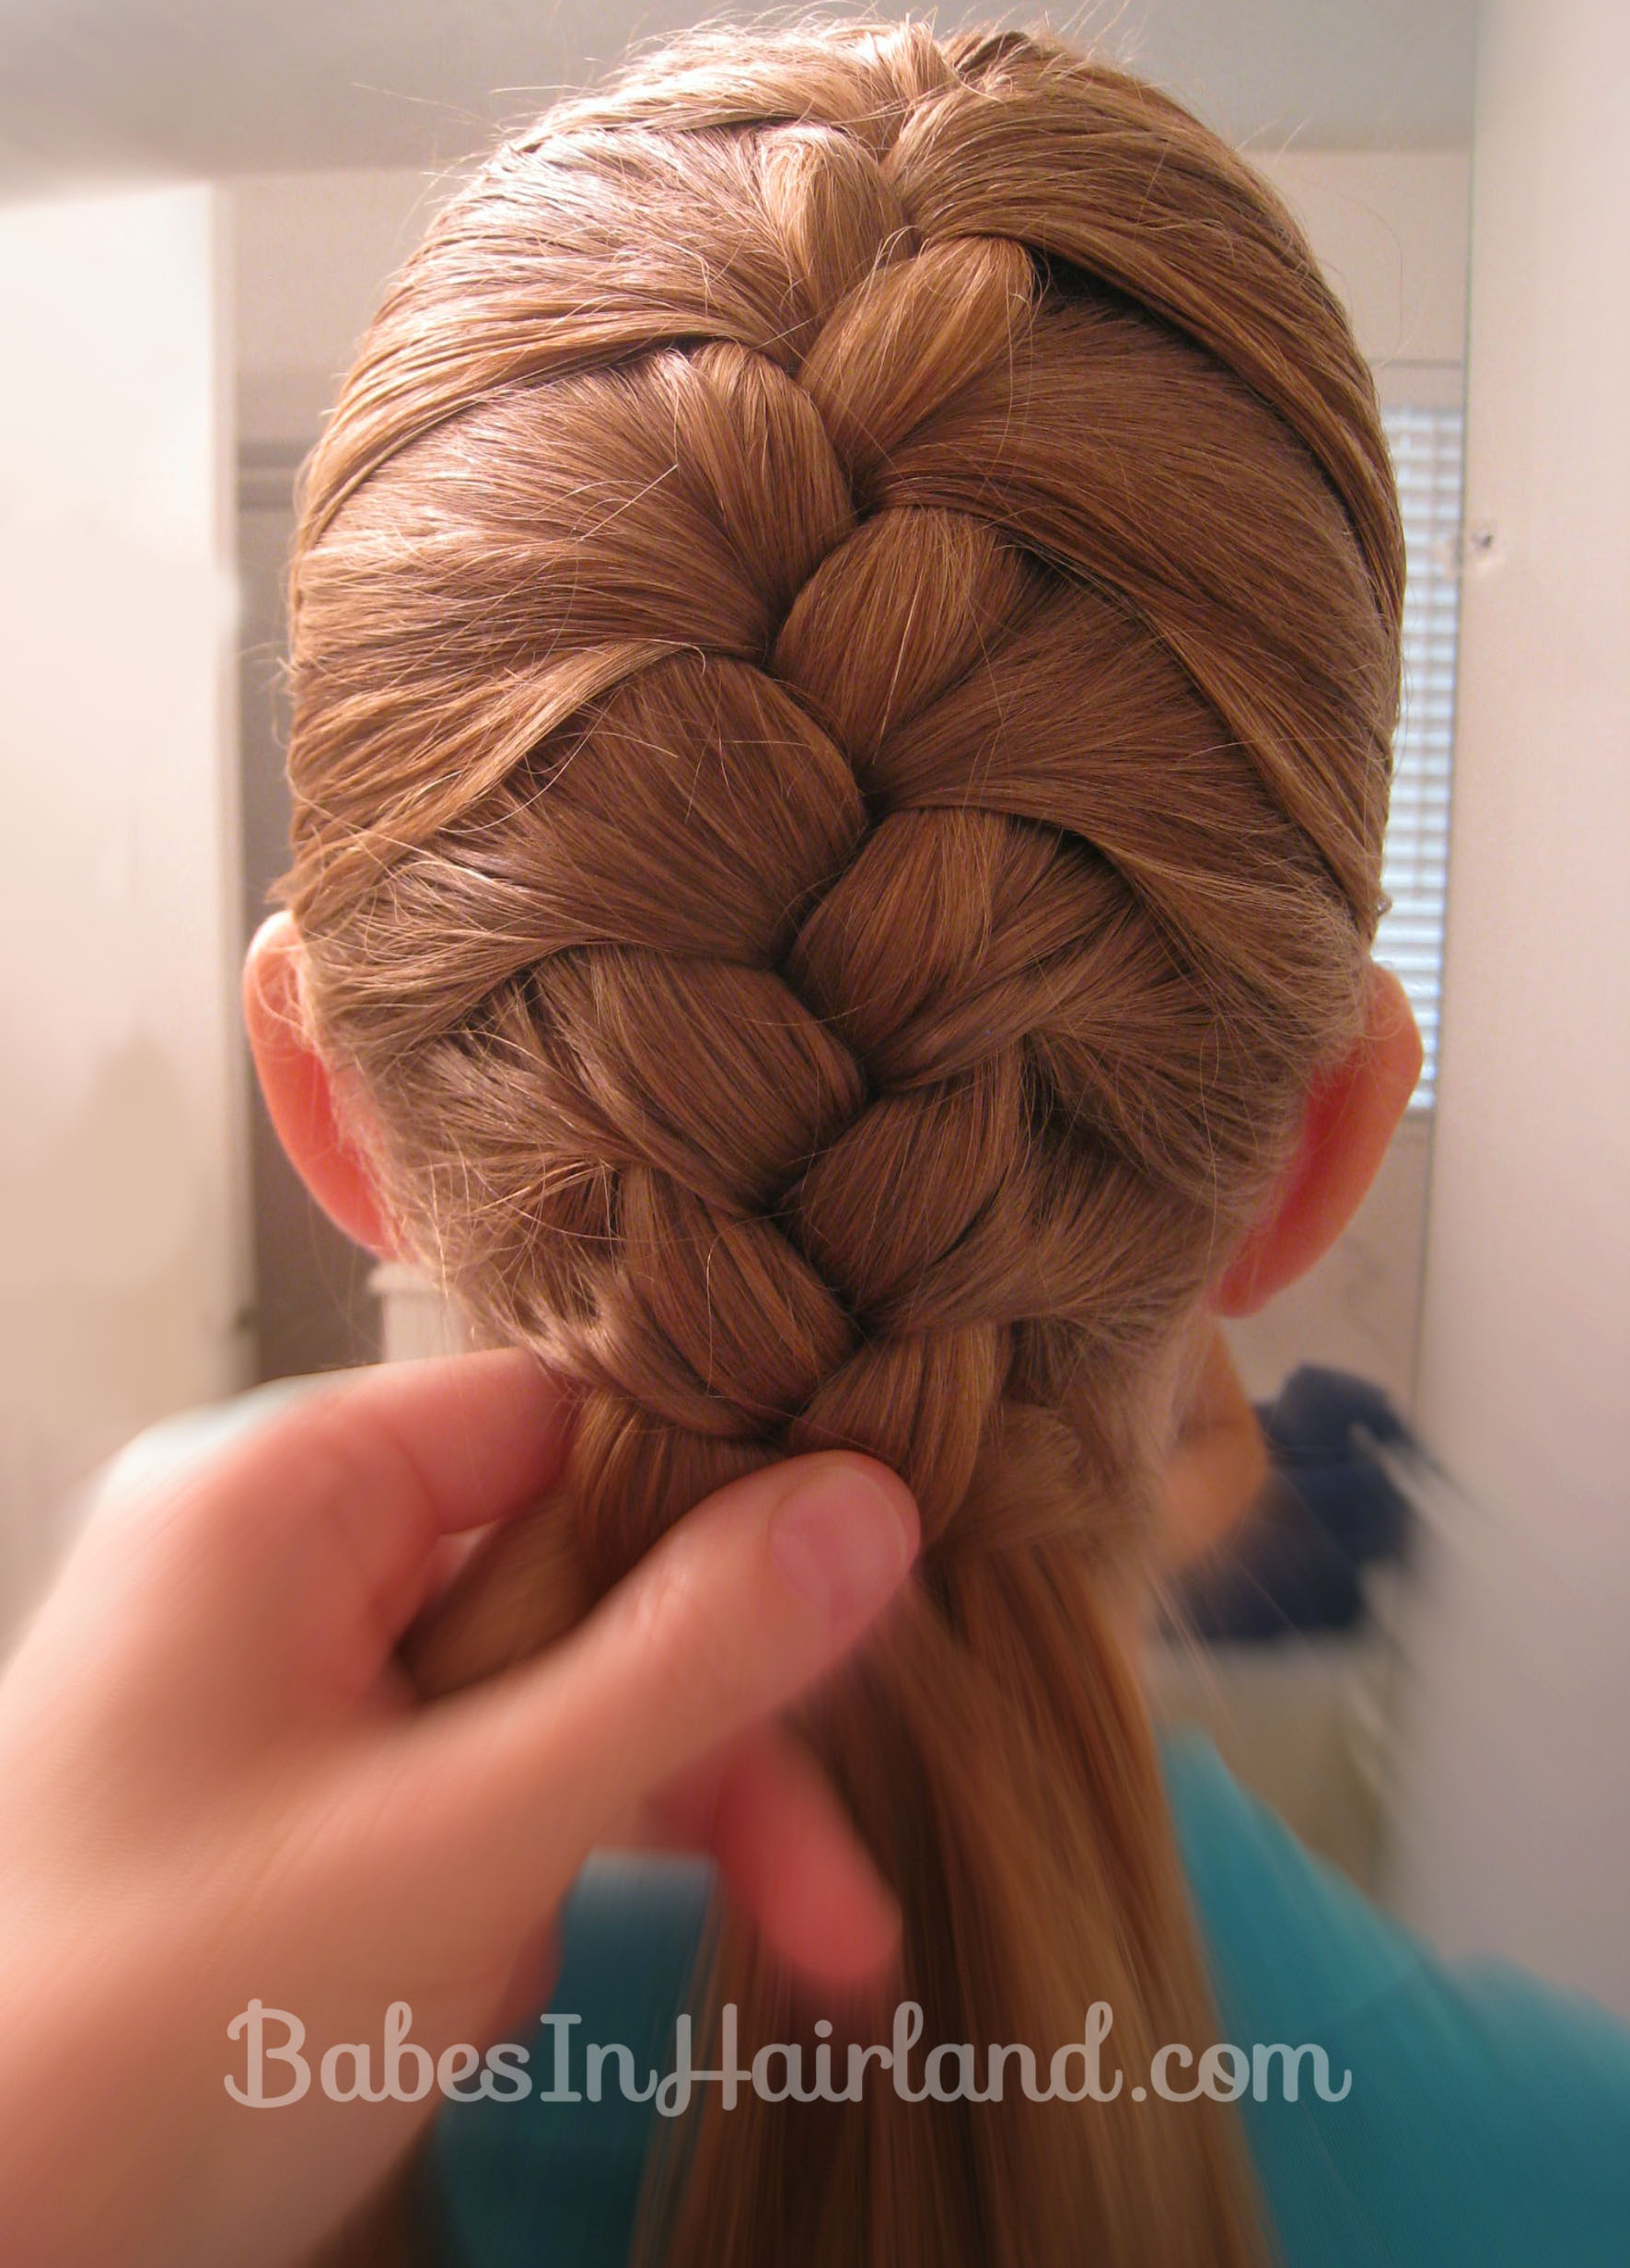 French Braid And Fishbone Bun From Babesinhairland (2)